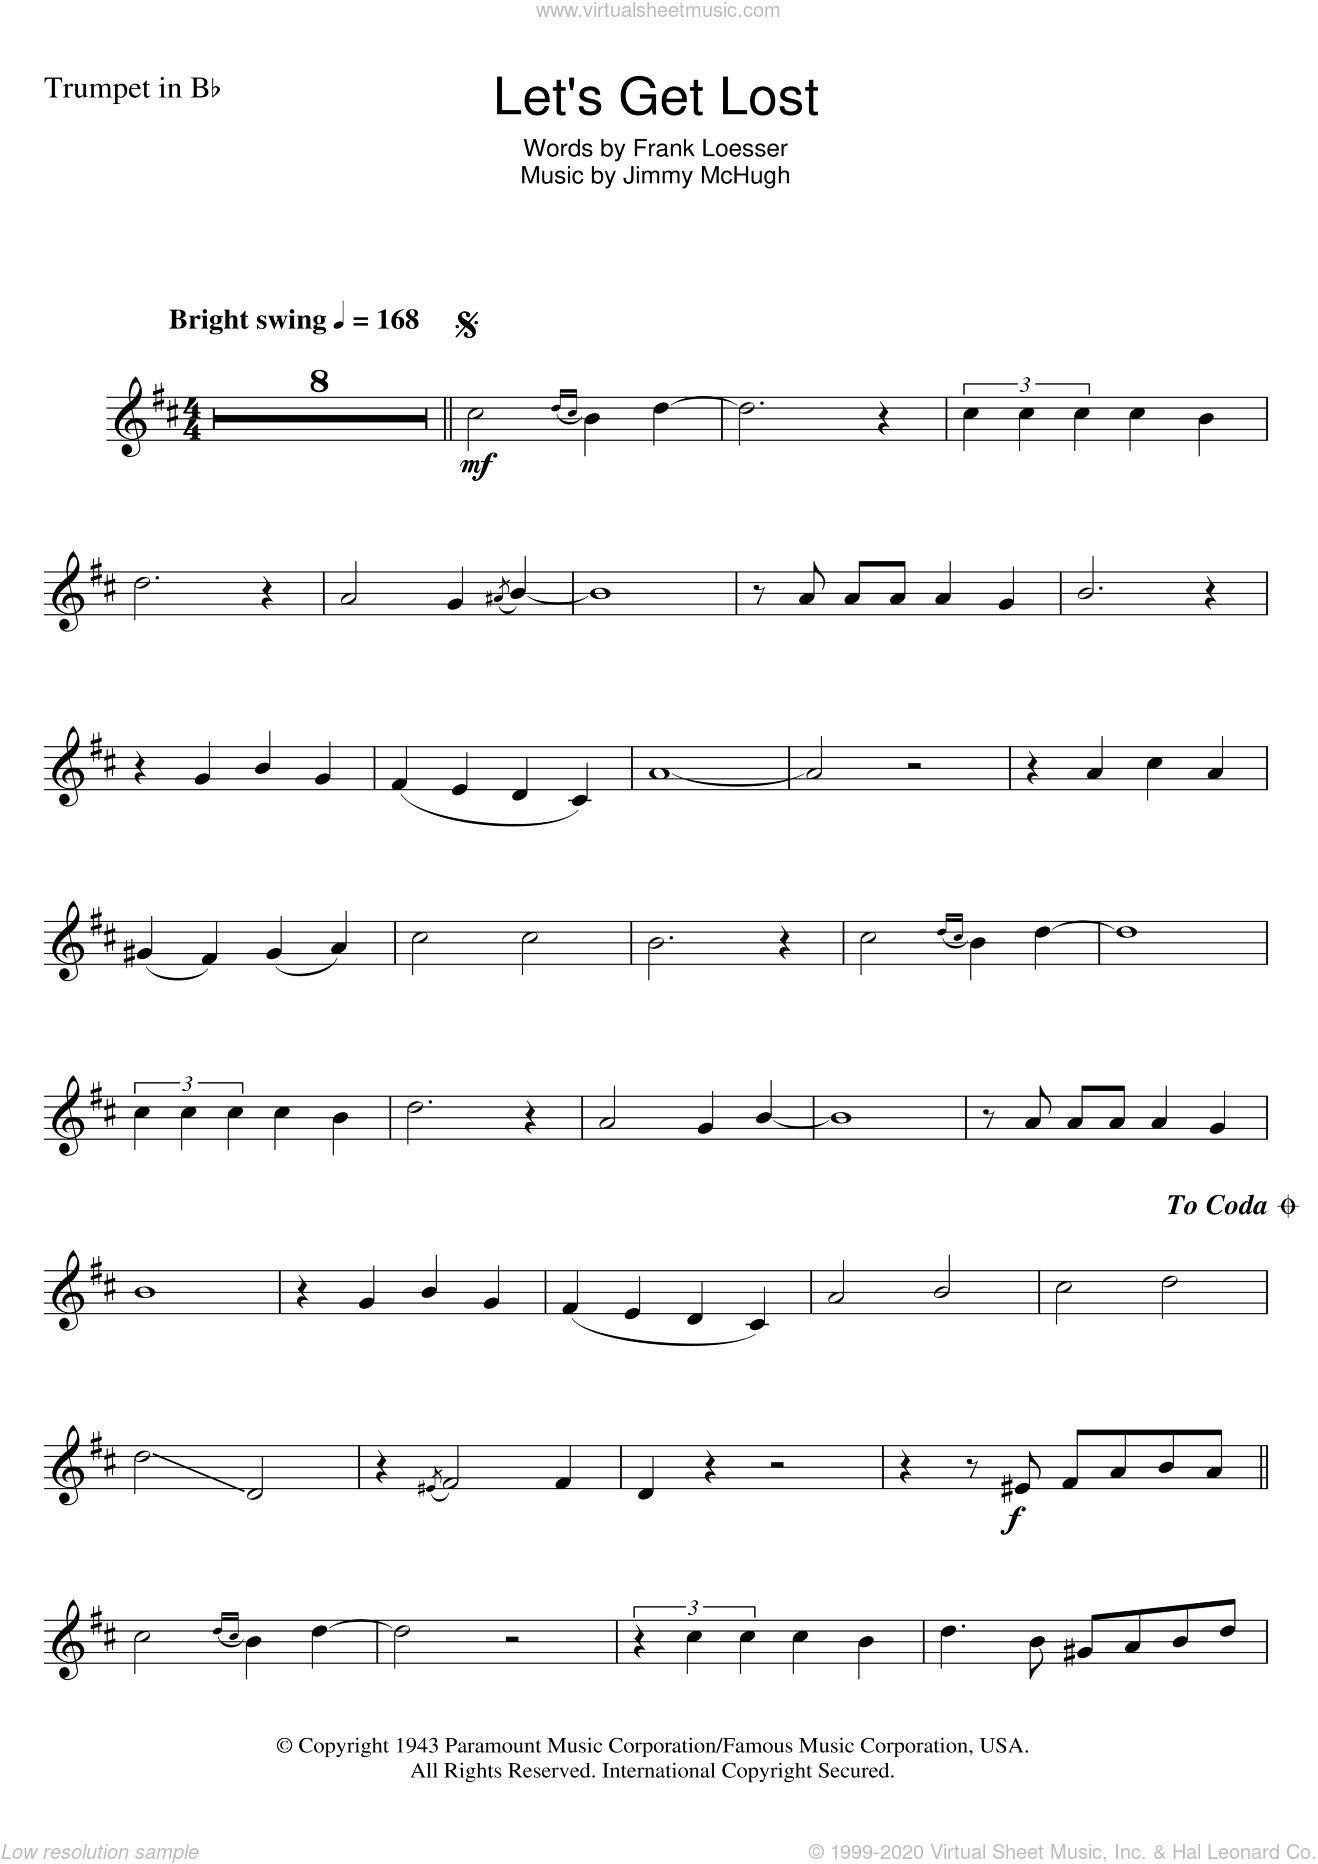 Let's Get Lost sheet music for trumpet solo by Jimmy McHugh, Chet Baker and Frank Loesser. Score Image Preview.